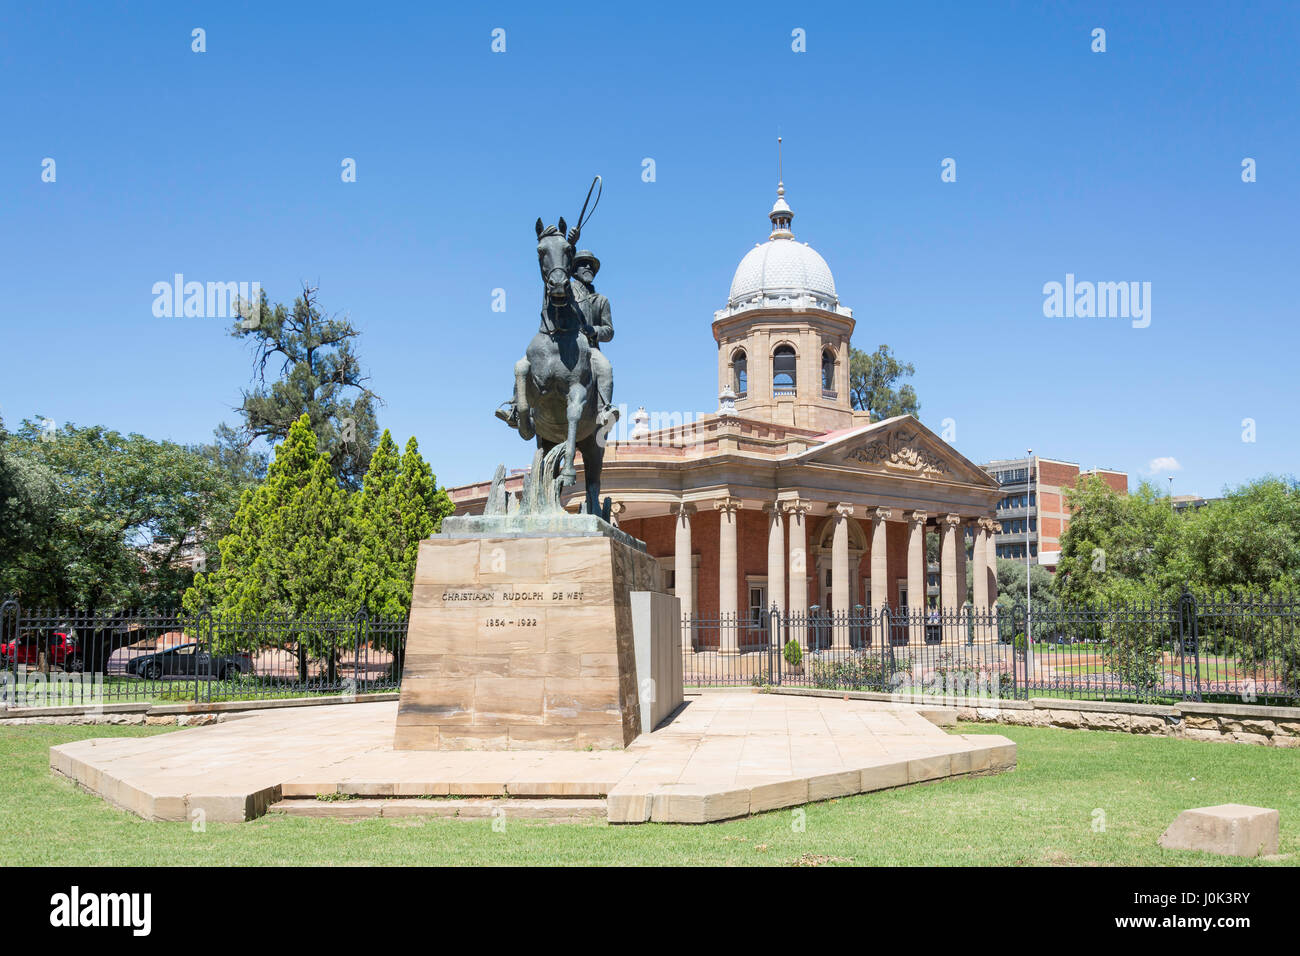 The Fourth Raadsaal and Christiaan de Wet statue, President Brand Street, Bloemfontein, Free State Province, Republic - Stock Image